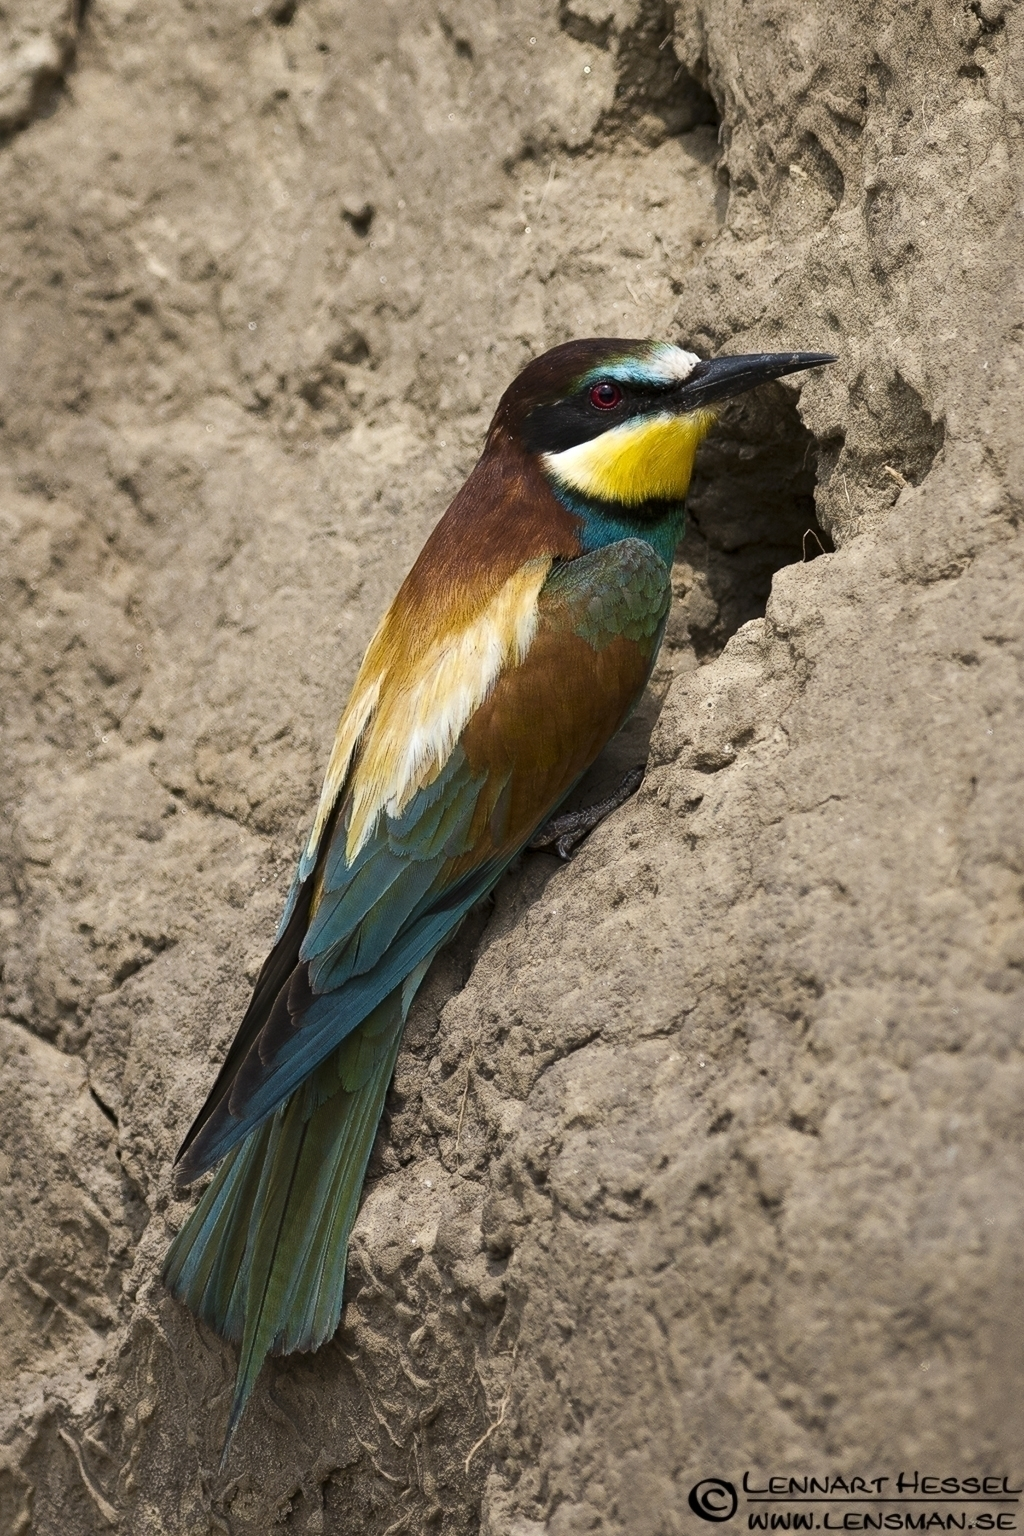 European Bee-eater at the nest site in Hungary